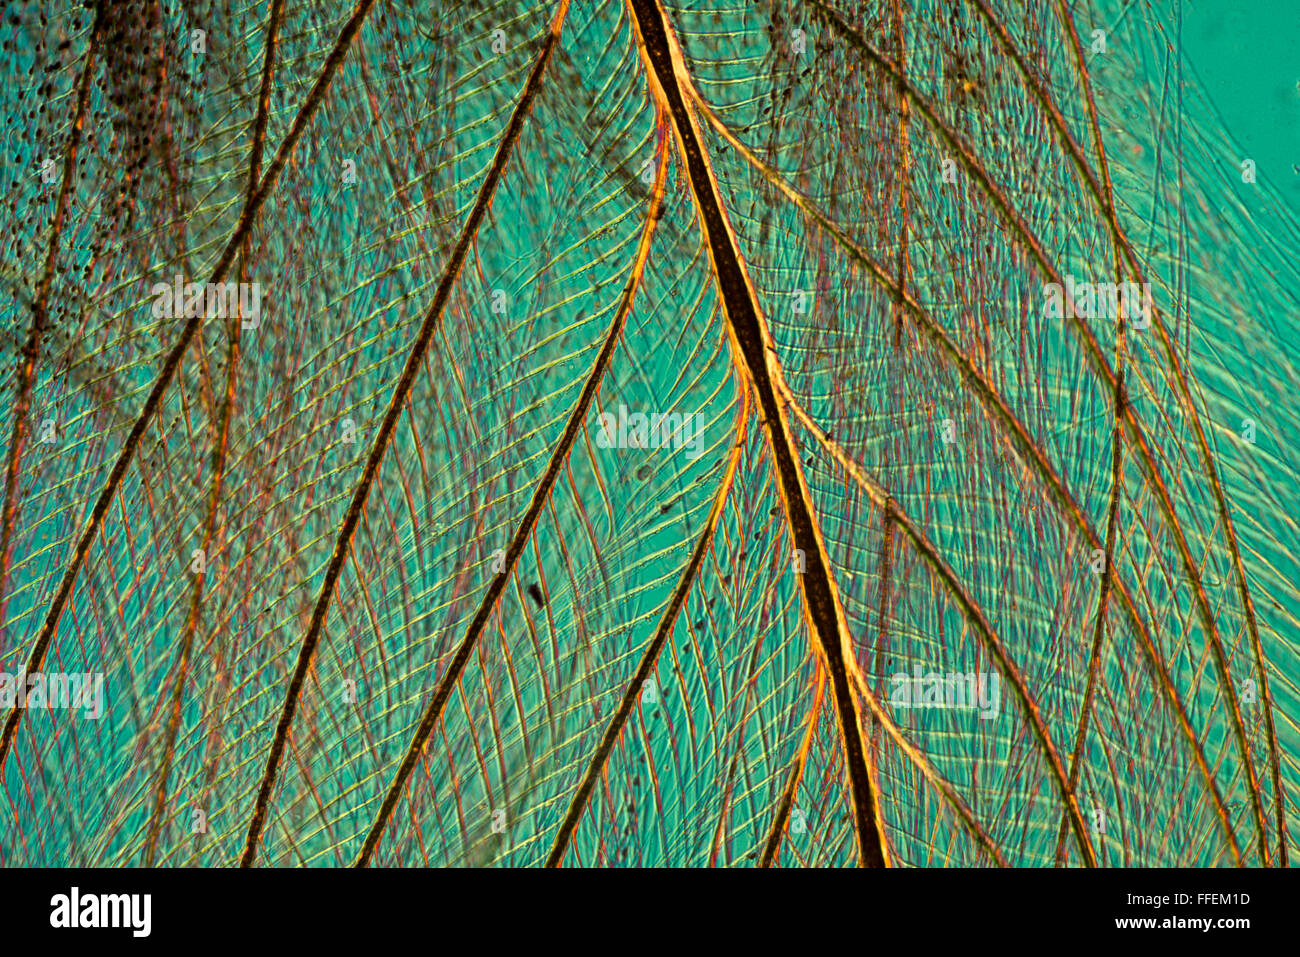 Microscopic image - Stock Image